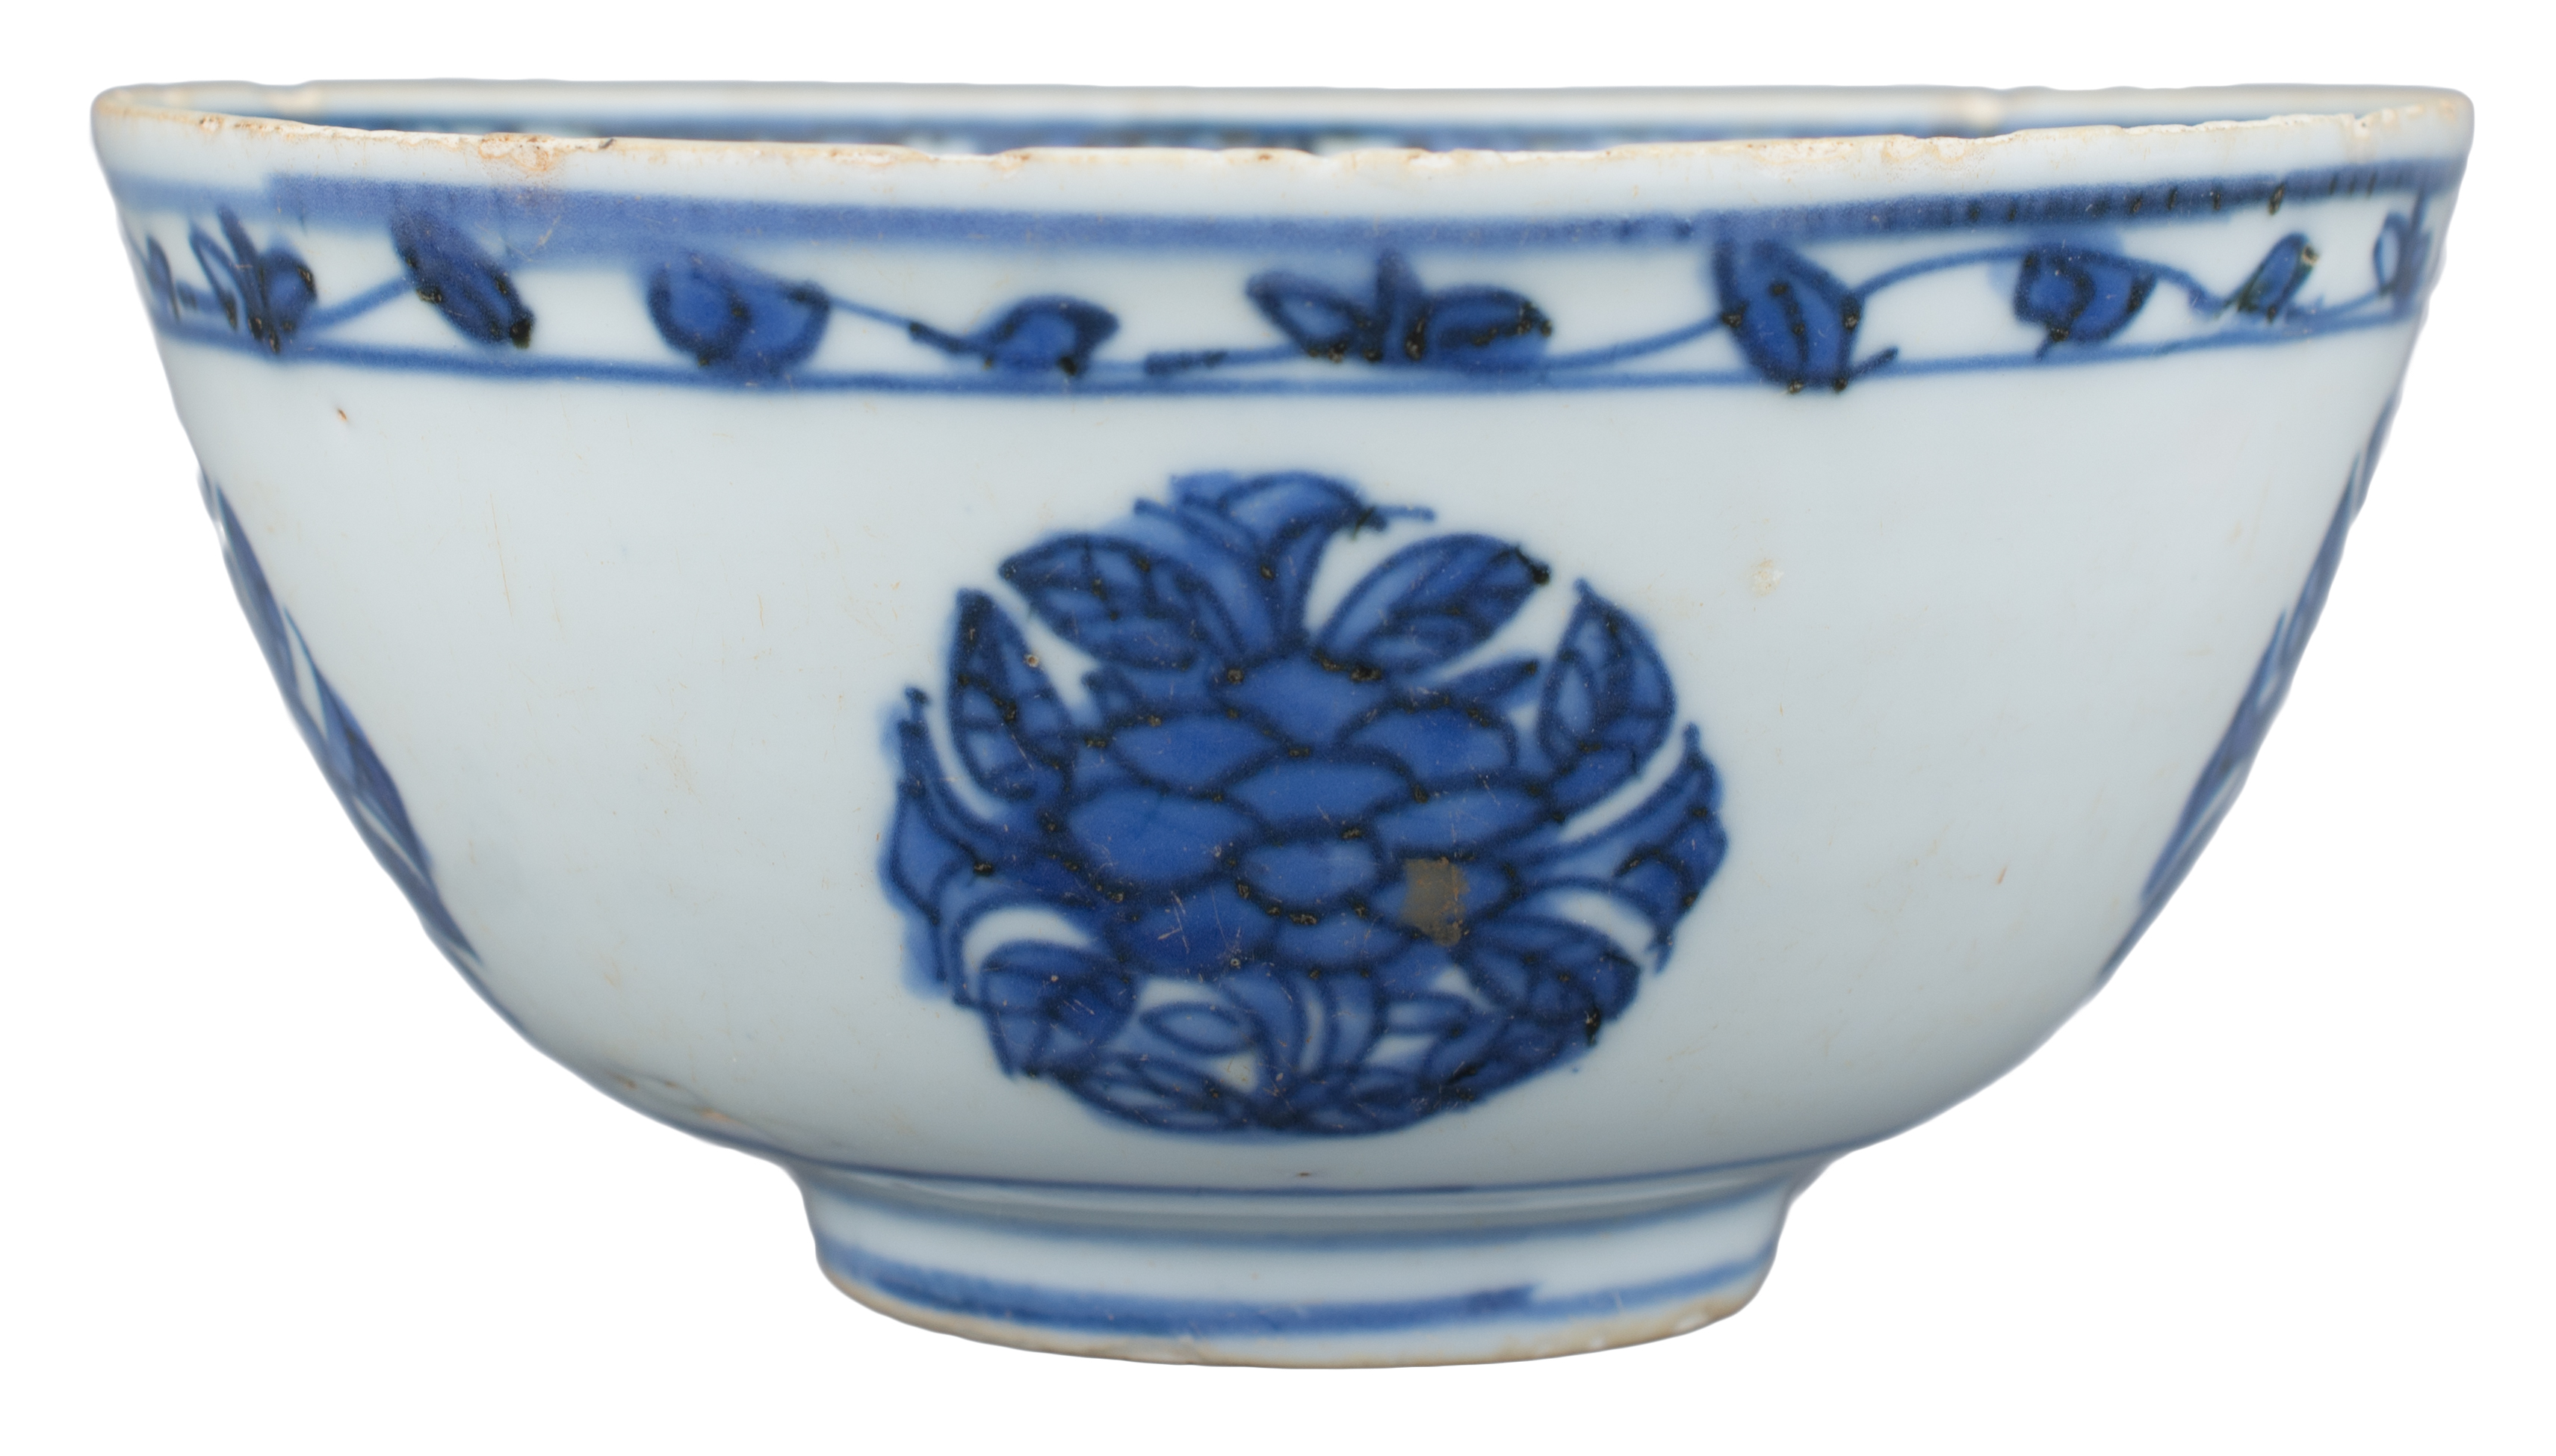 Lot 4 - A Chinese Ming Dynasty Blue & White Porcelain Bowl